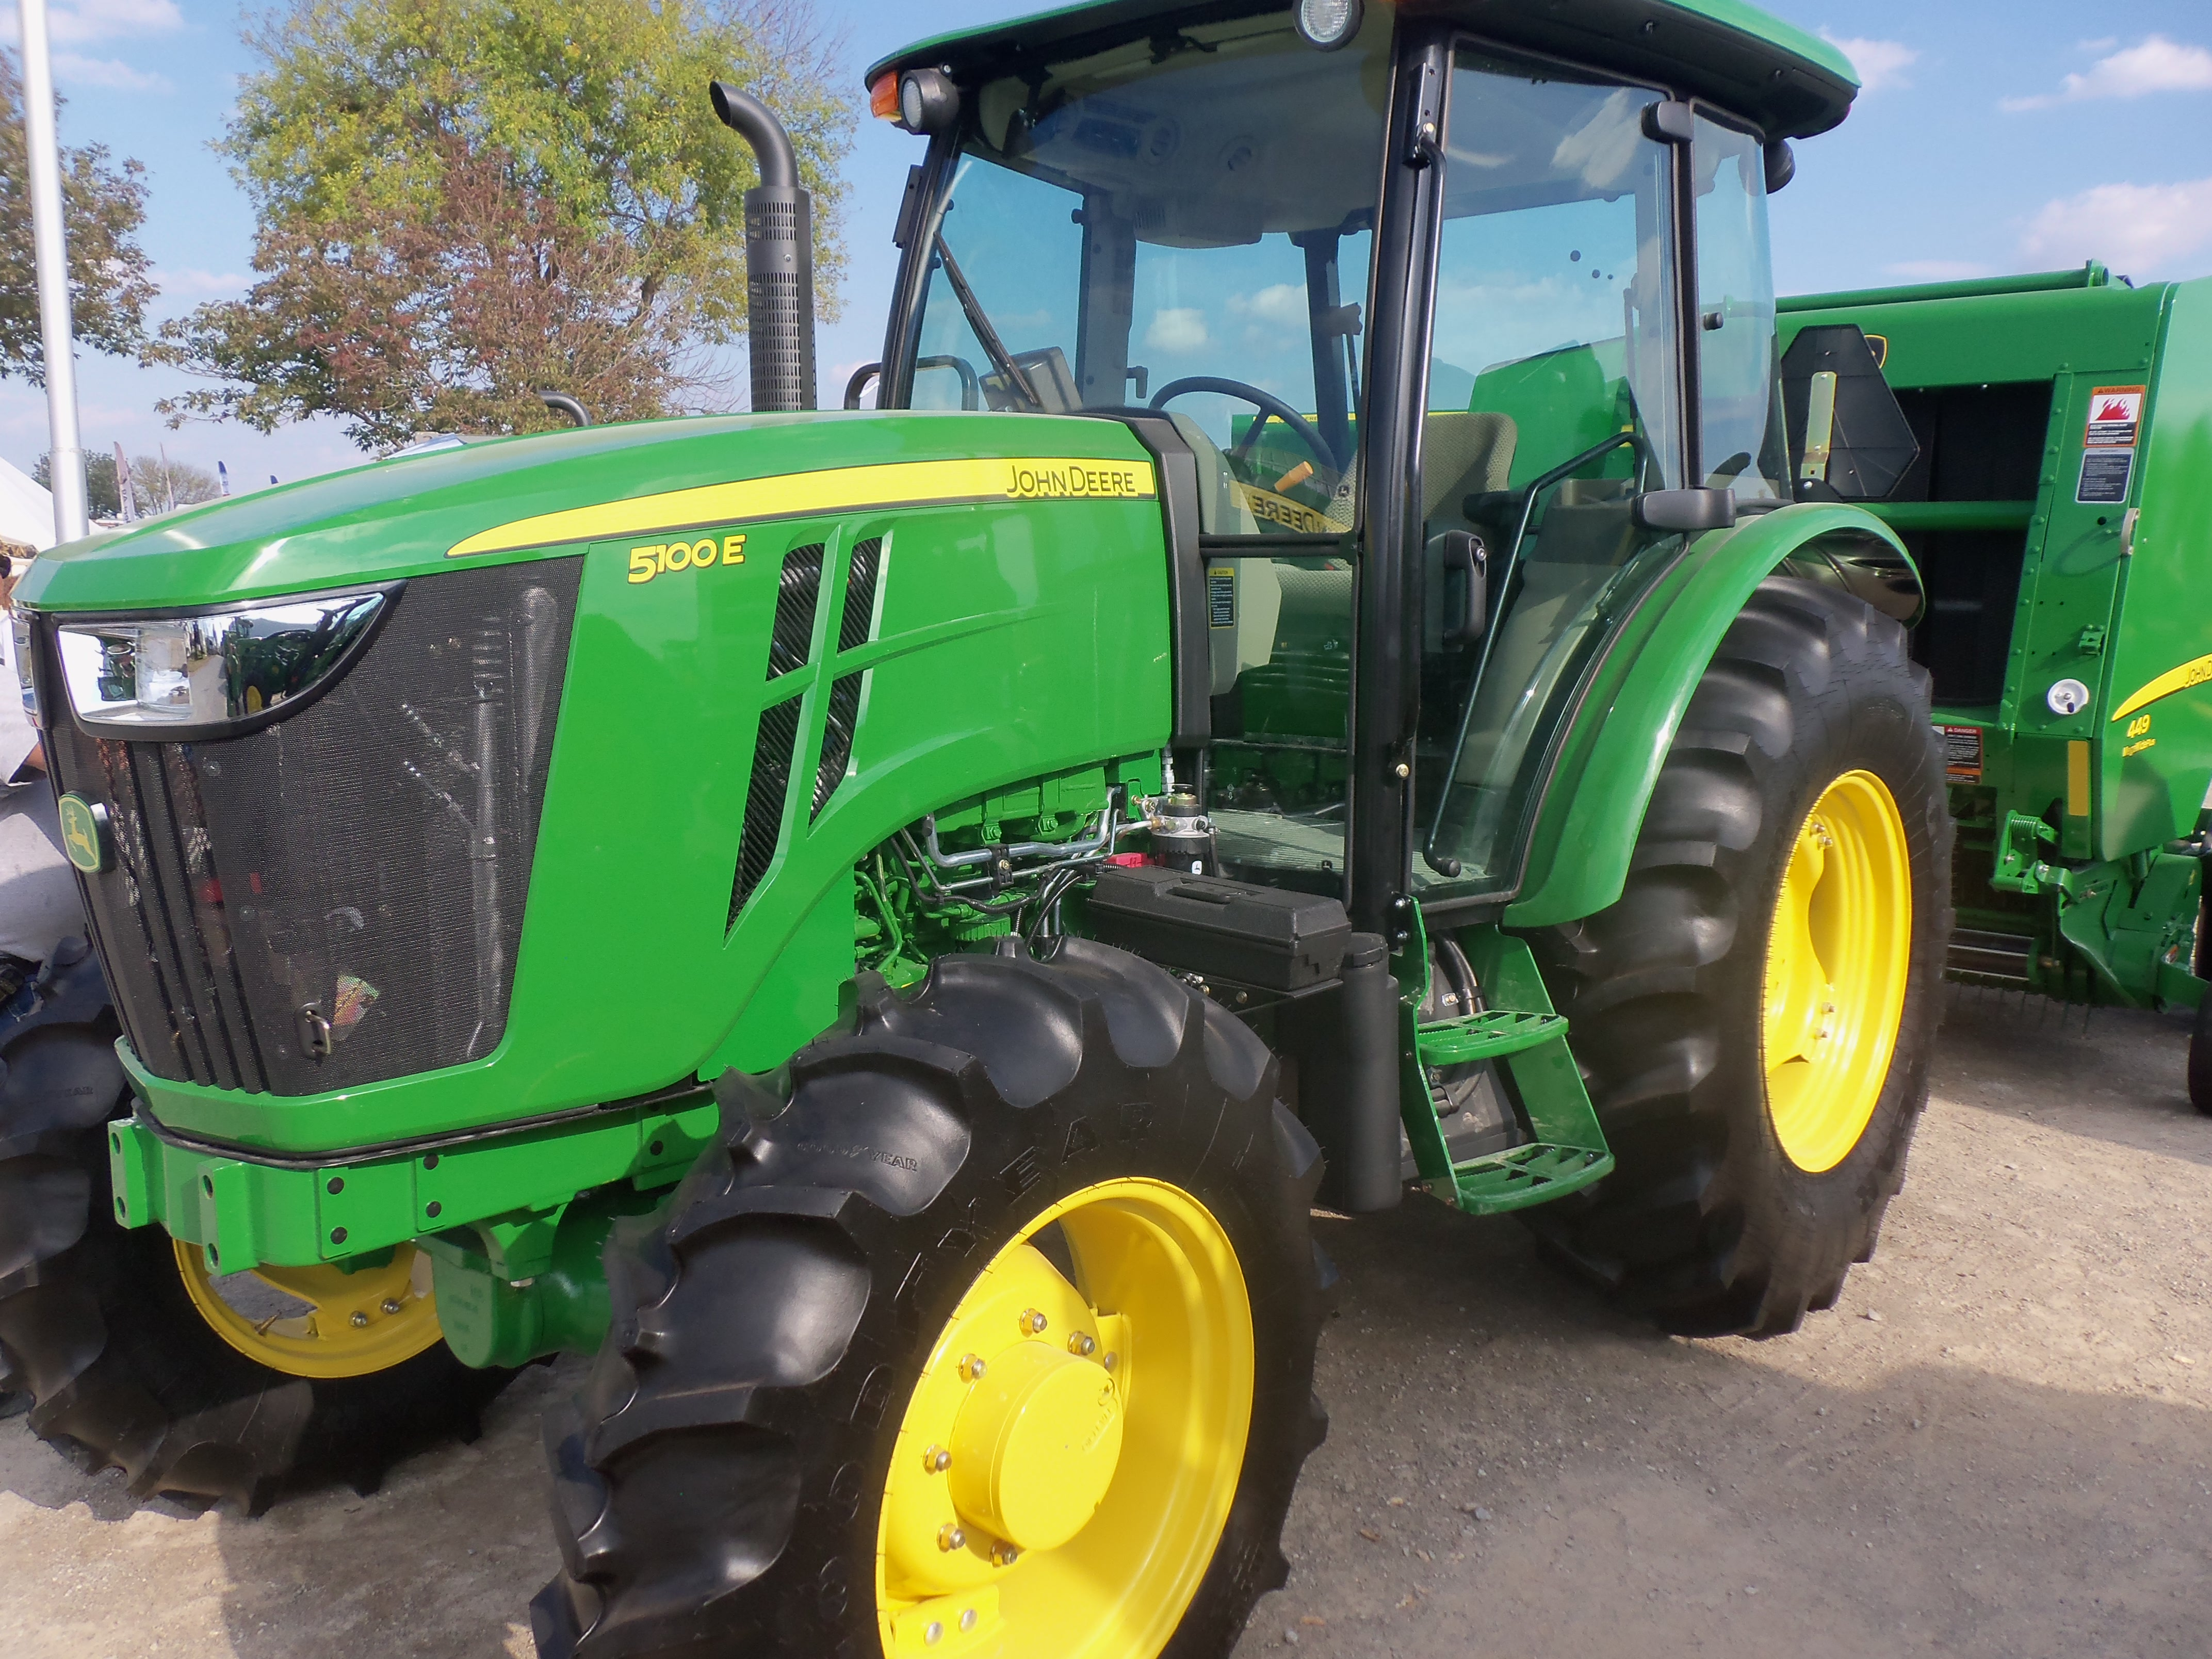 John Deere 5100E | John Deere equipment | Pinterest